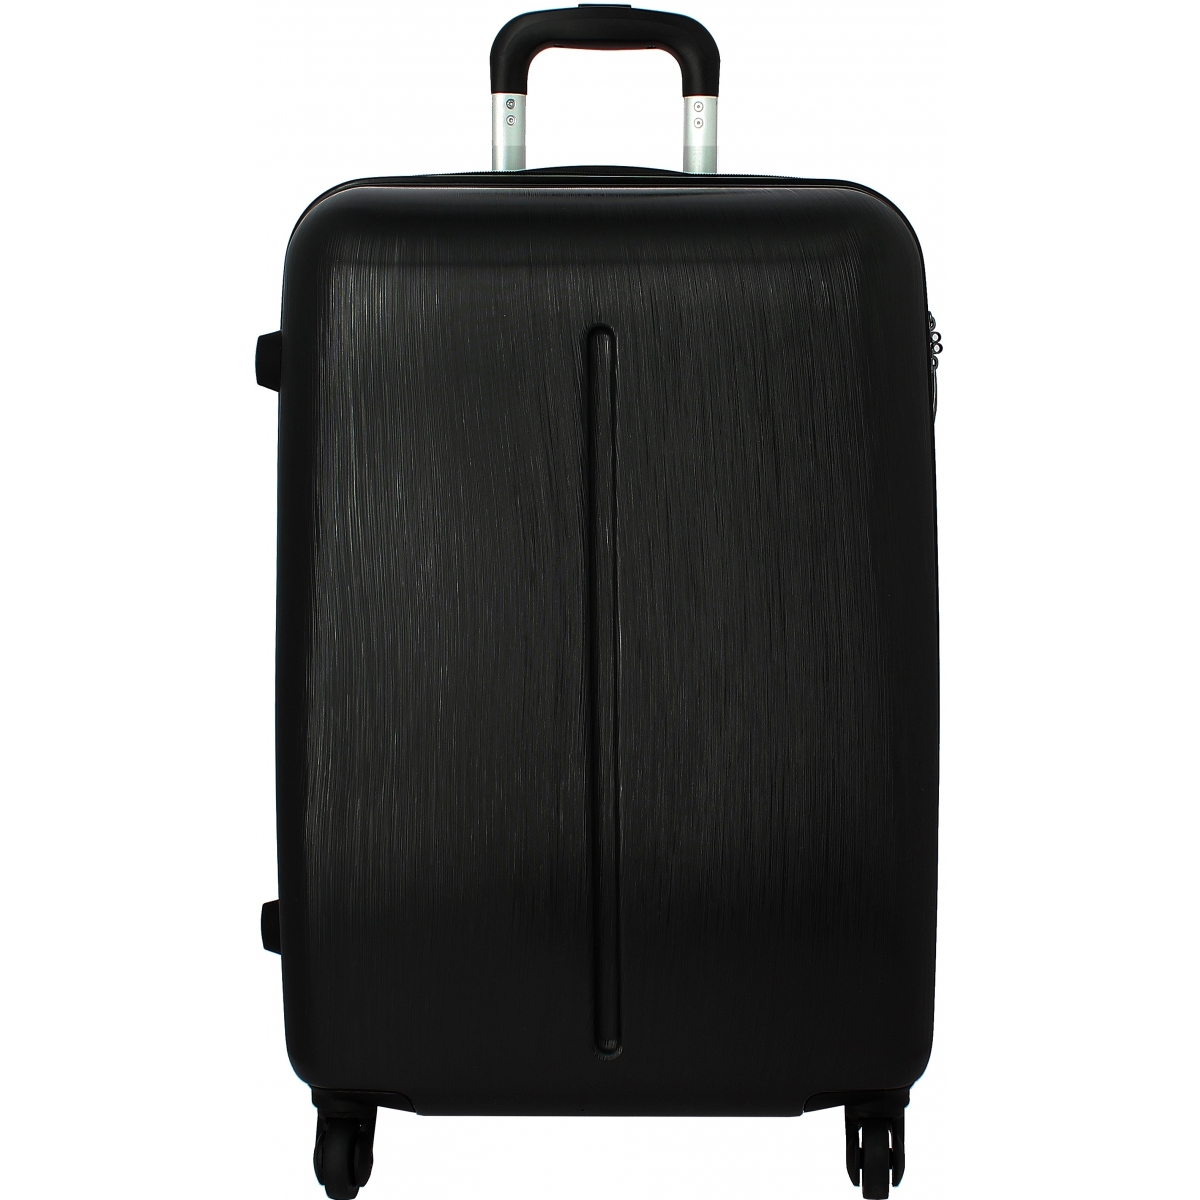 valise rigide david jones taille g tsa ba10141g couleur principale noir valise. Black Bedroom Furniture Sets. Home Design Ideas